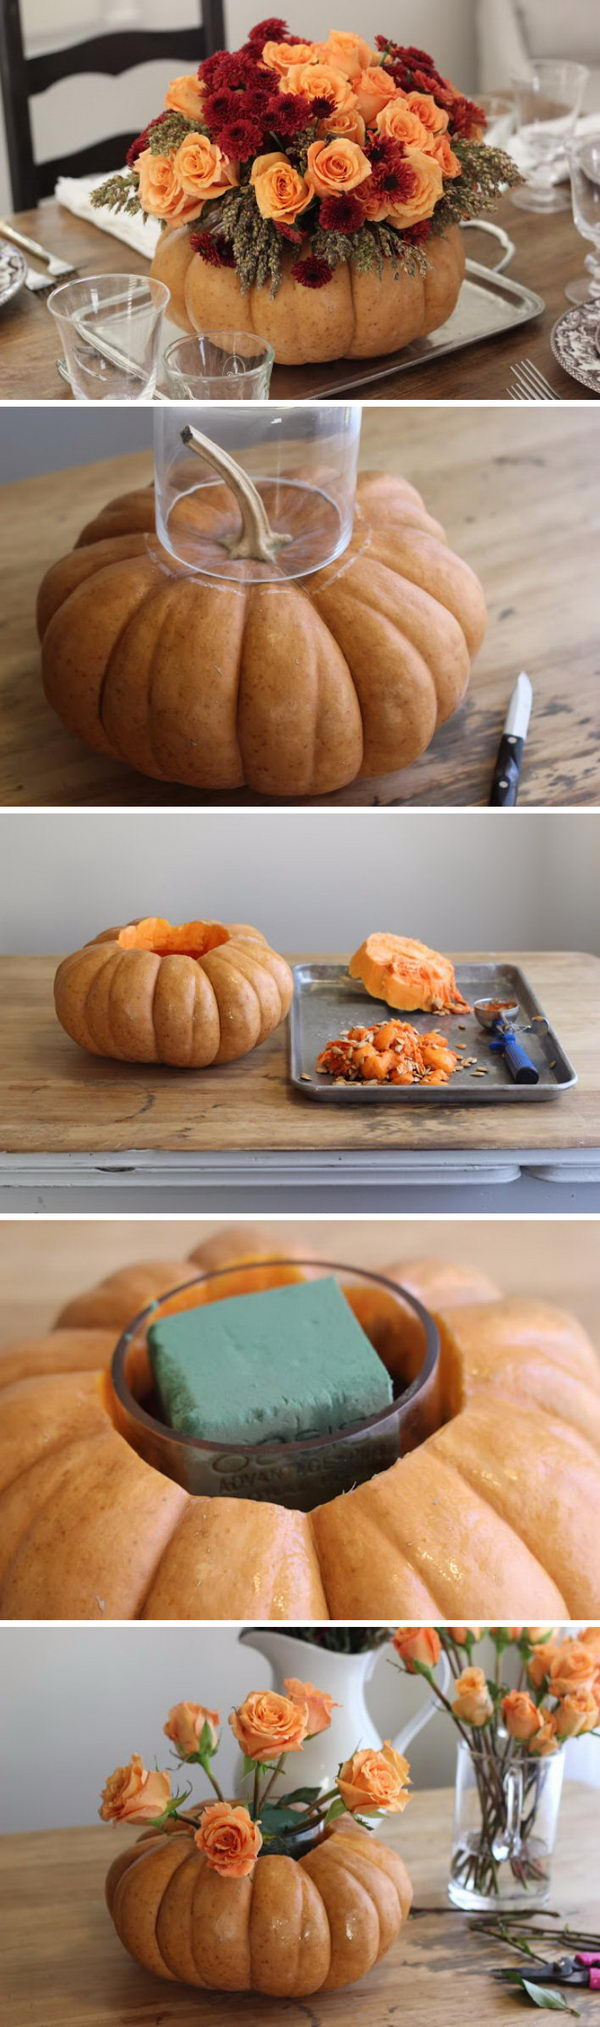 DIY Pumpkin Vase Centerpiece.